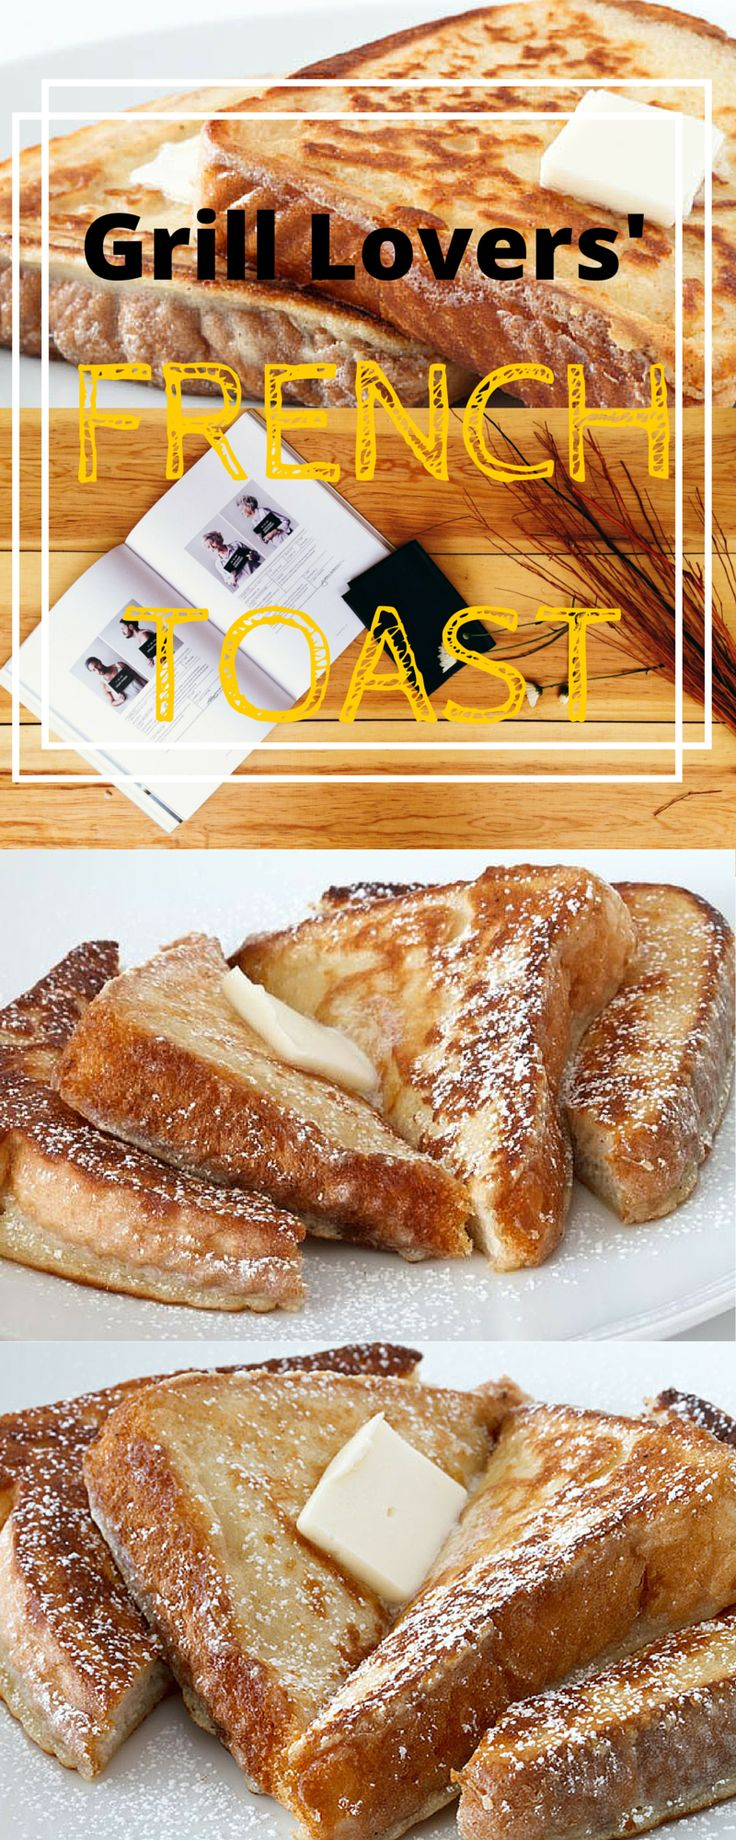 Grill Lovers' Amazing French Toast Recipe #recipes #foodporn #foodie